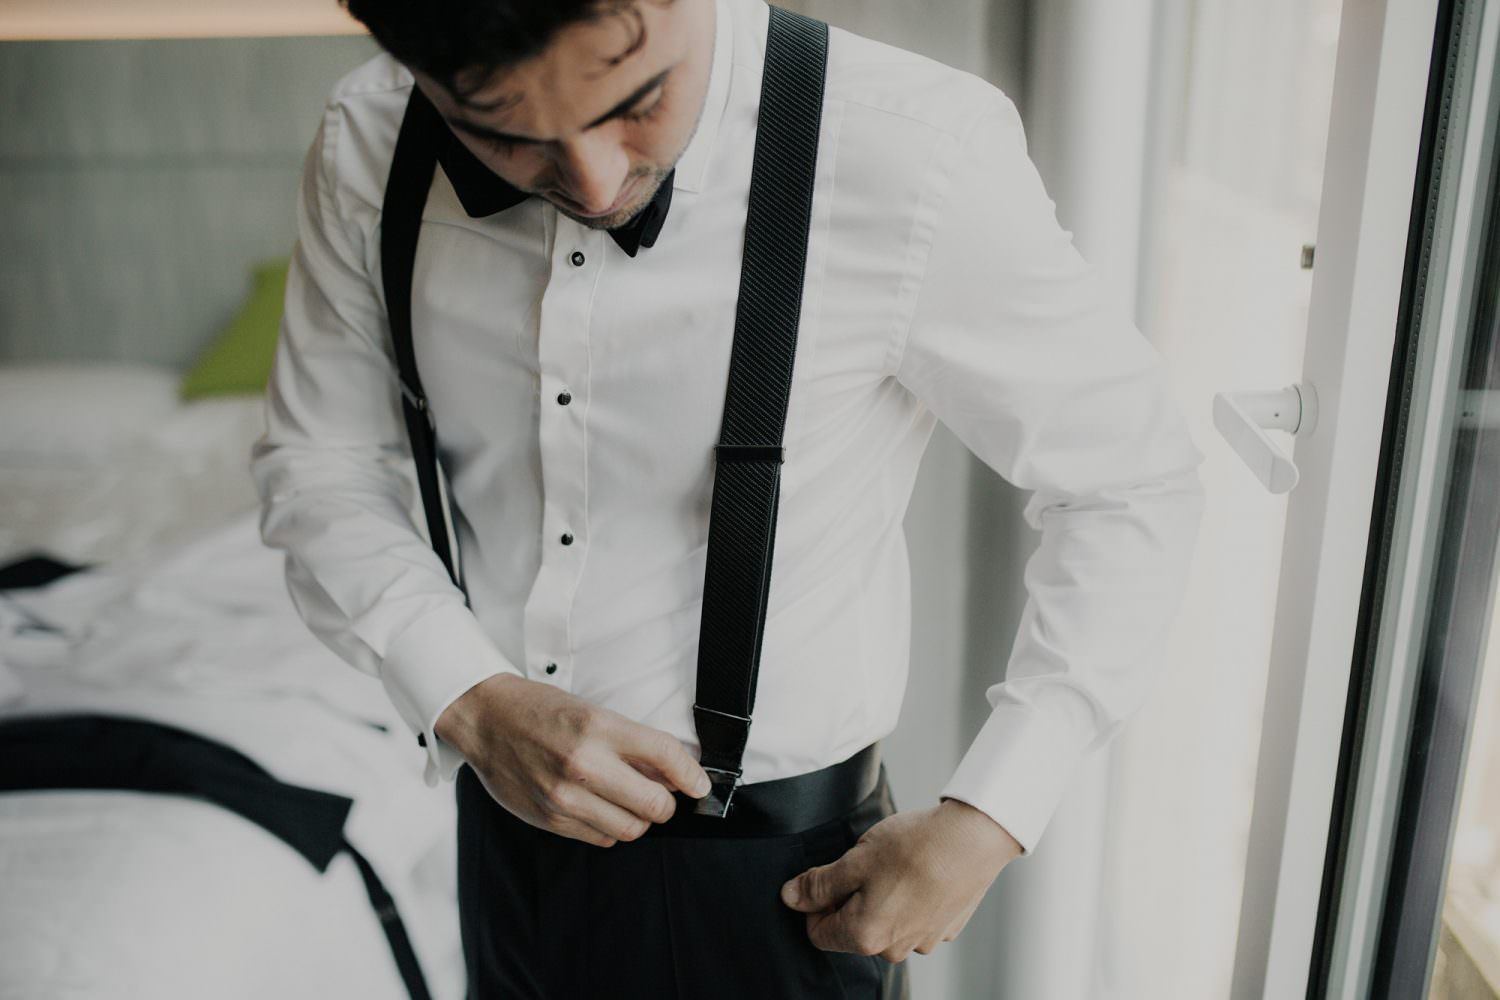 Groom adjusting his suspenders while getting ready on his wedding day